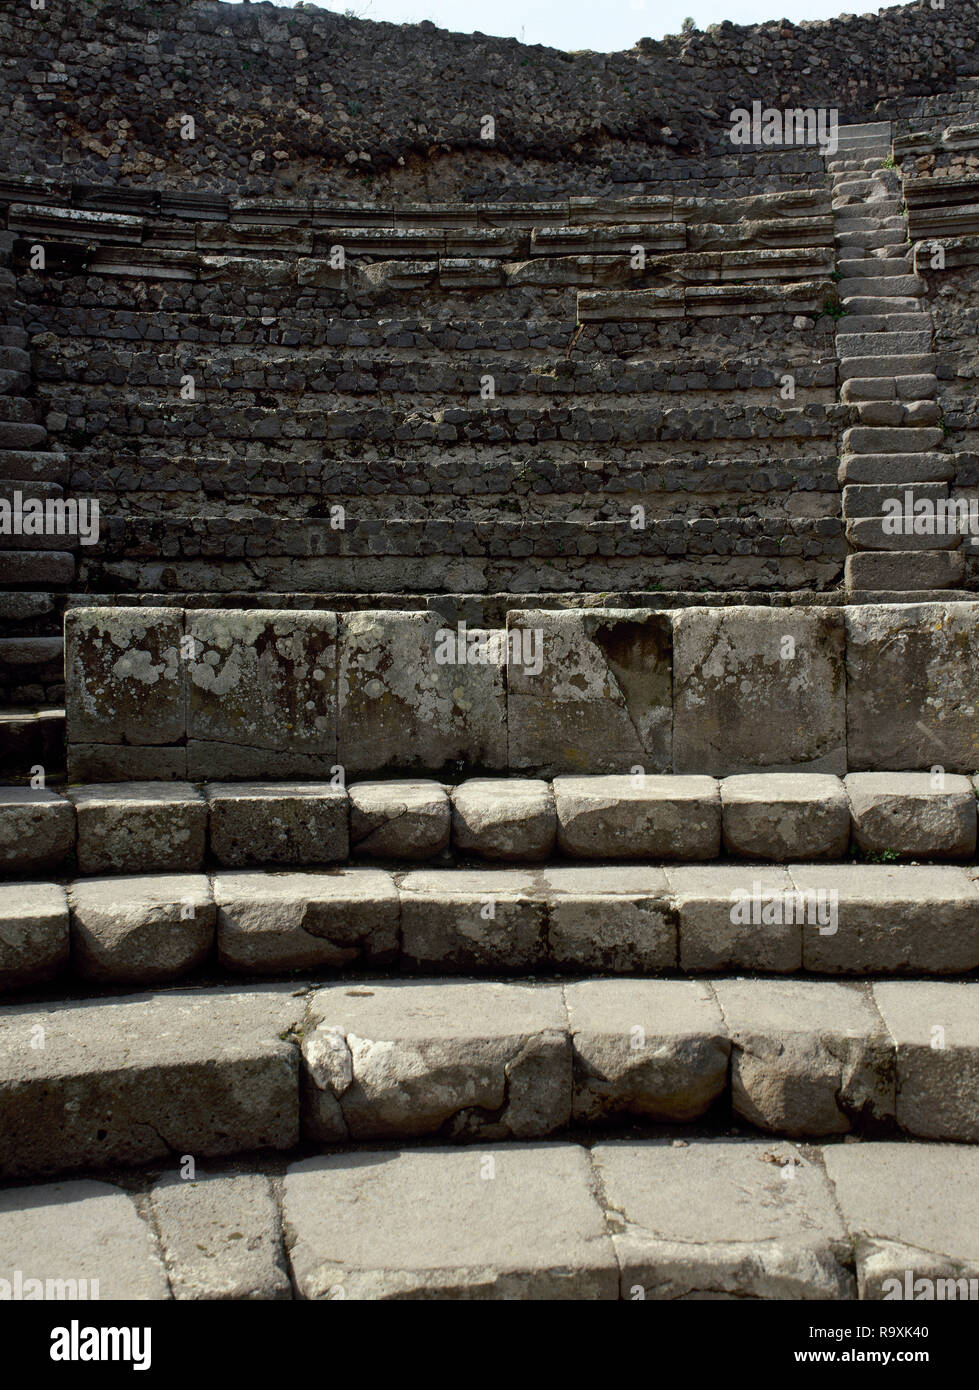 Italy. Pompeii. Ancient Roman city destroyed by the eruption of the Vesuvius in 79 AD. Small Theatre or odeon. Roofed theatre 'teatrum tectum' which sat 1500 spectators, built in 80 BC. View of  the 'cavea', the seating sections organised in three sections, corresponding to the social class of the spectators. The ima cavea, lowest part (for upper echelons of society), the media cavea (for men), the summa cavea, highest section (for women and children). Campania. - Stock Image